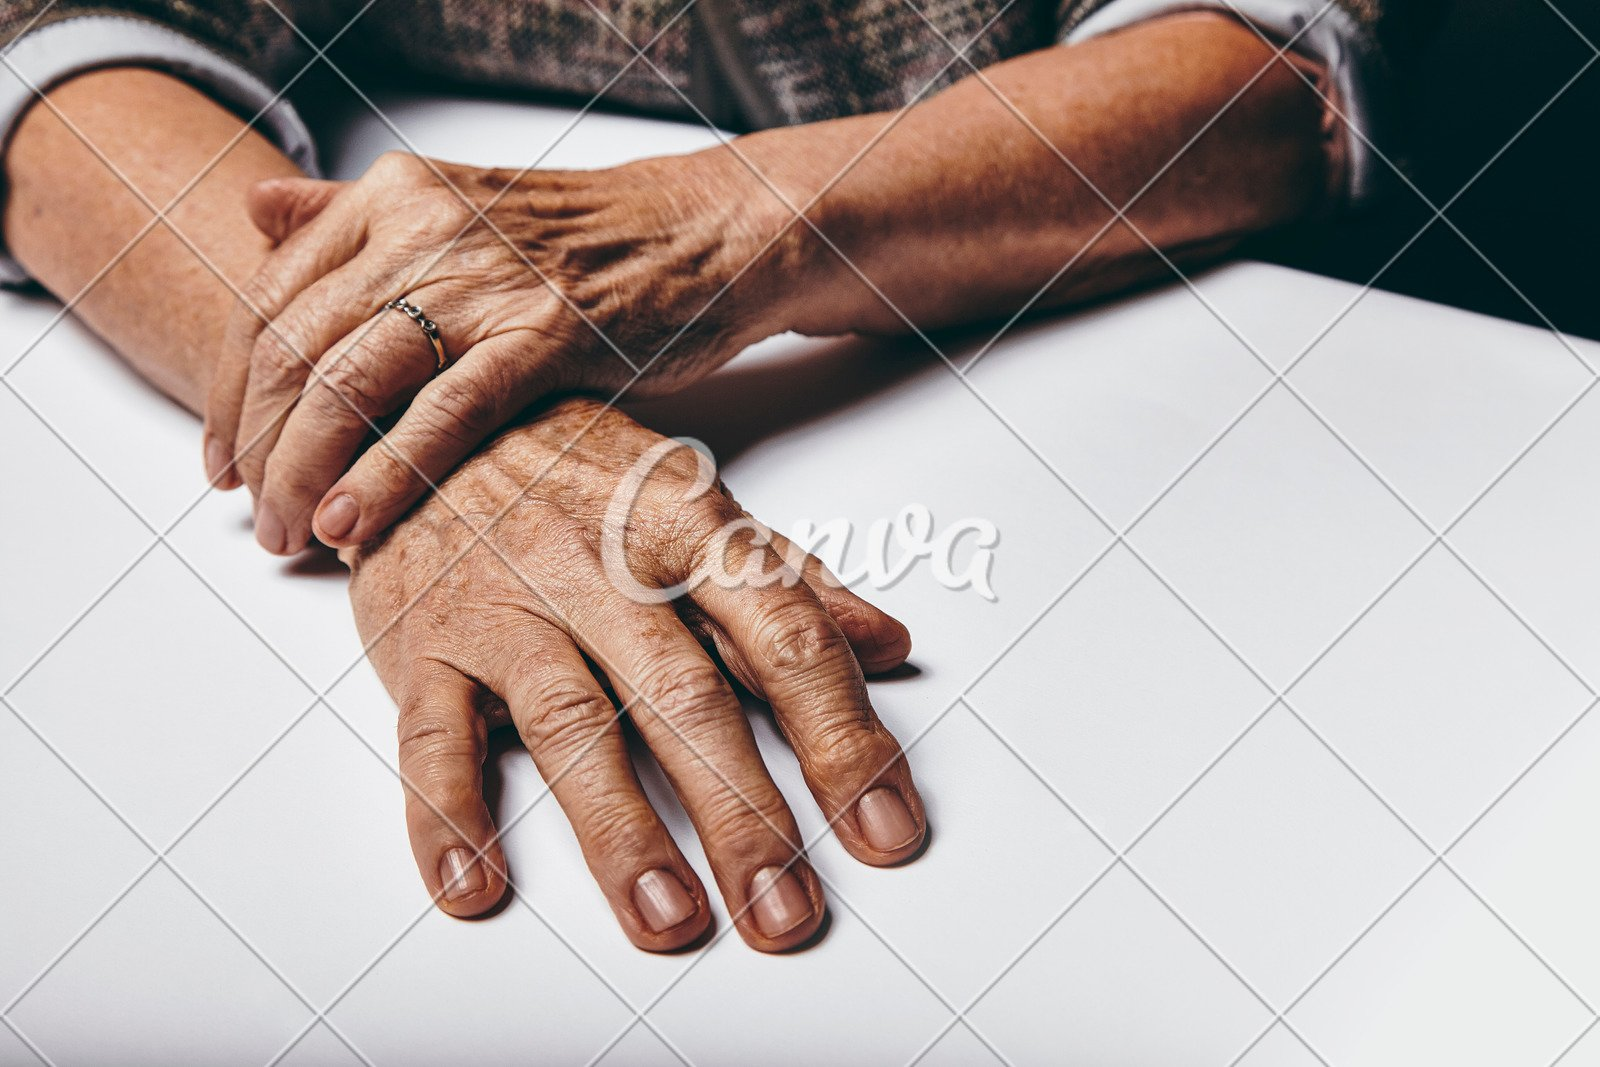 Old Female Hands on Table - Photos by Canva